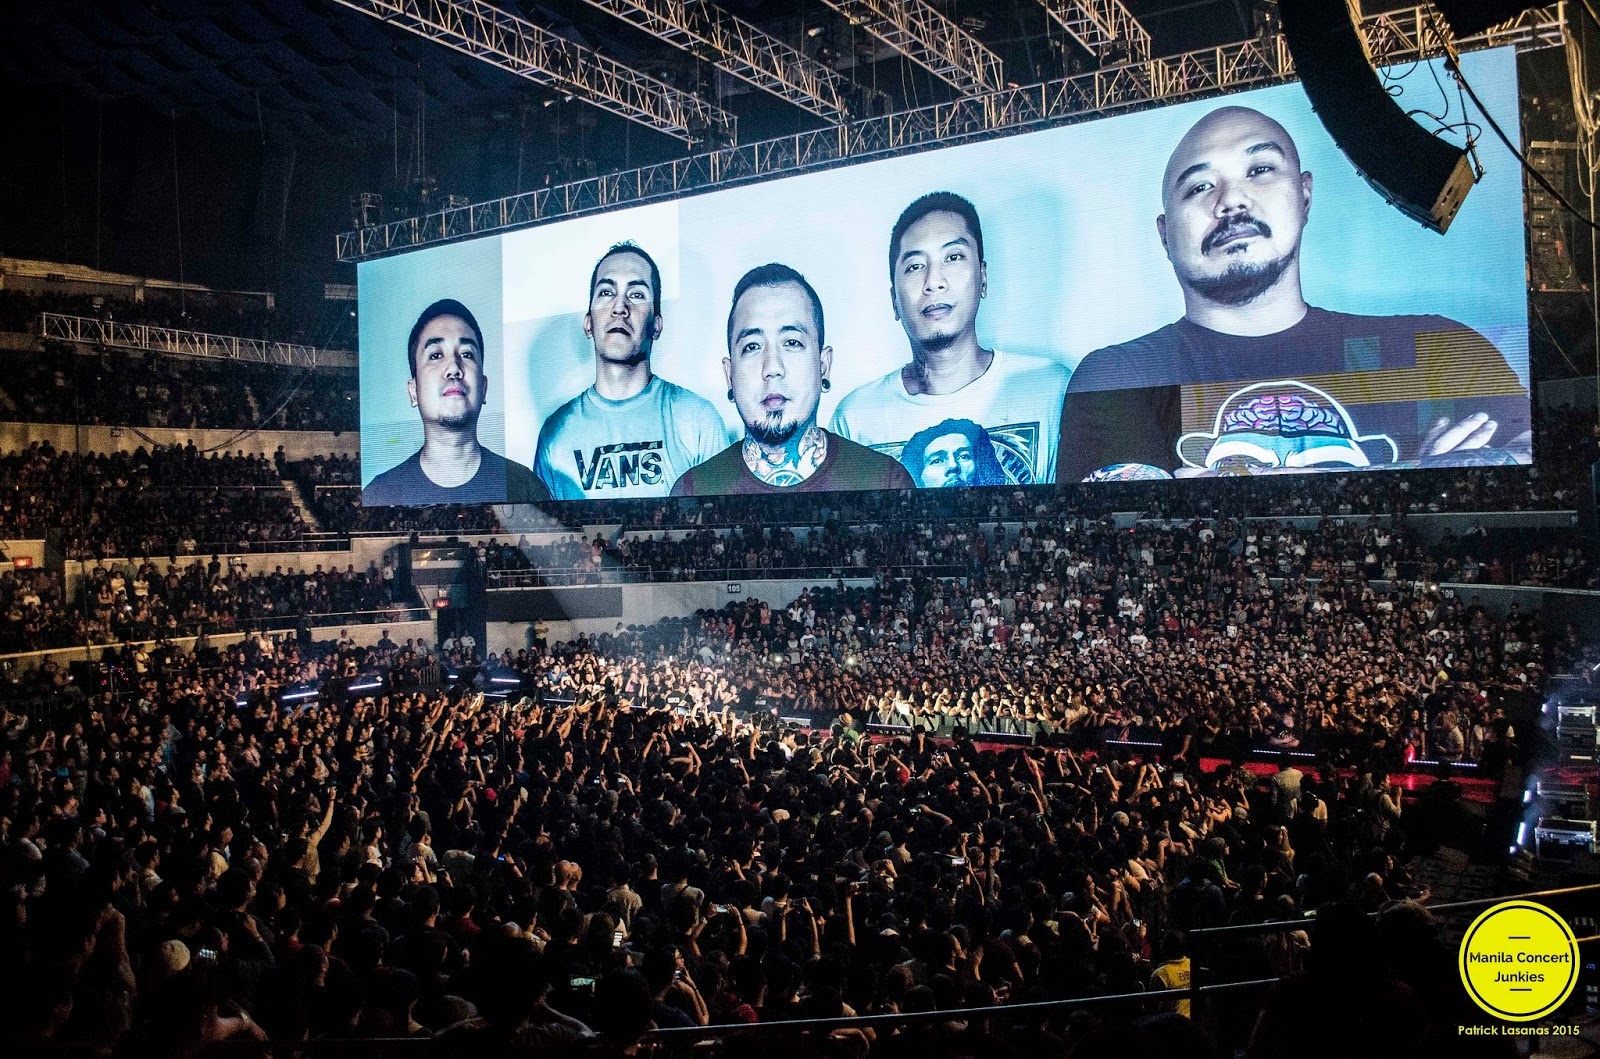 Manila Concert Junkies: 15 years of great music with Kamikazee #KamikazeeHulingSayaw